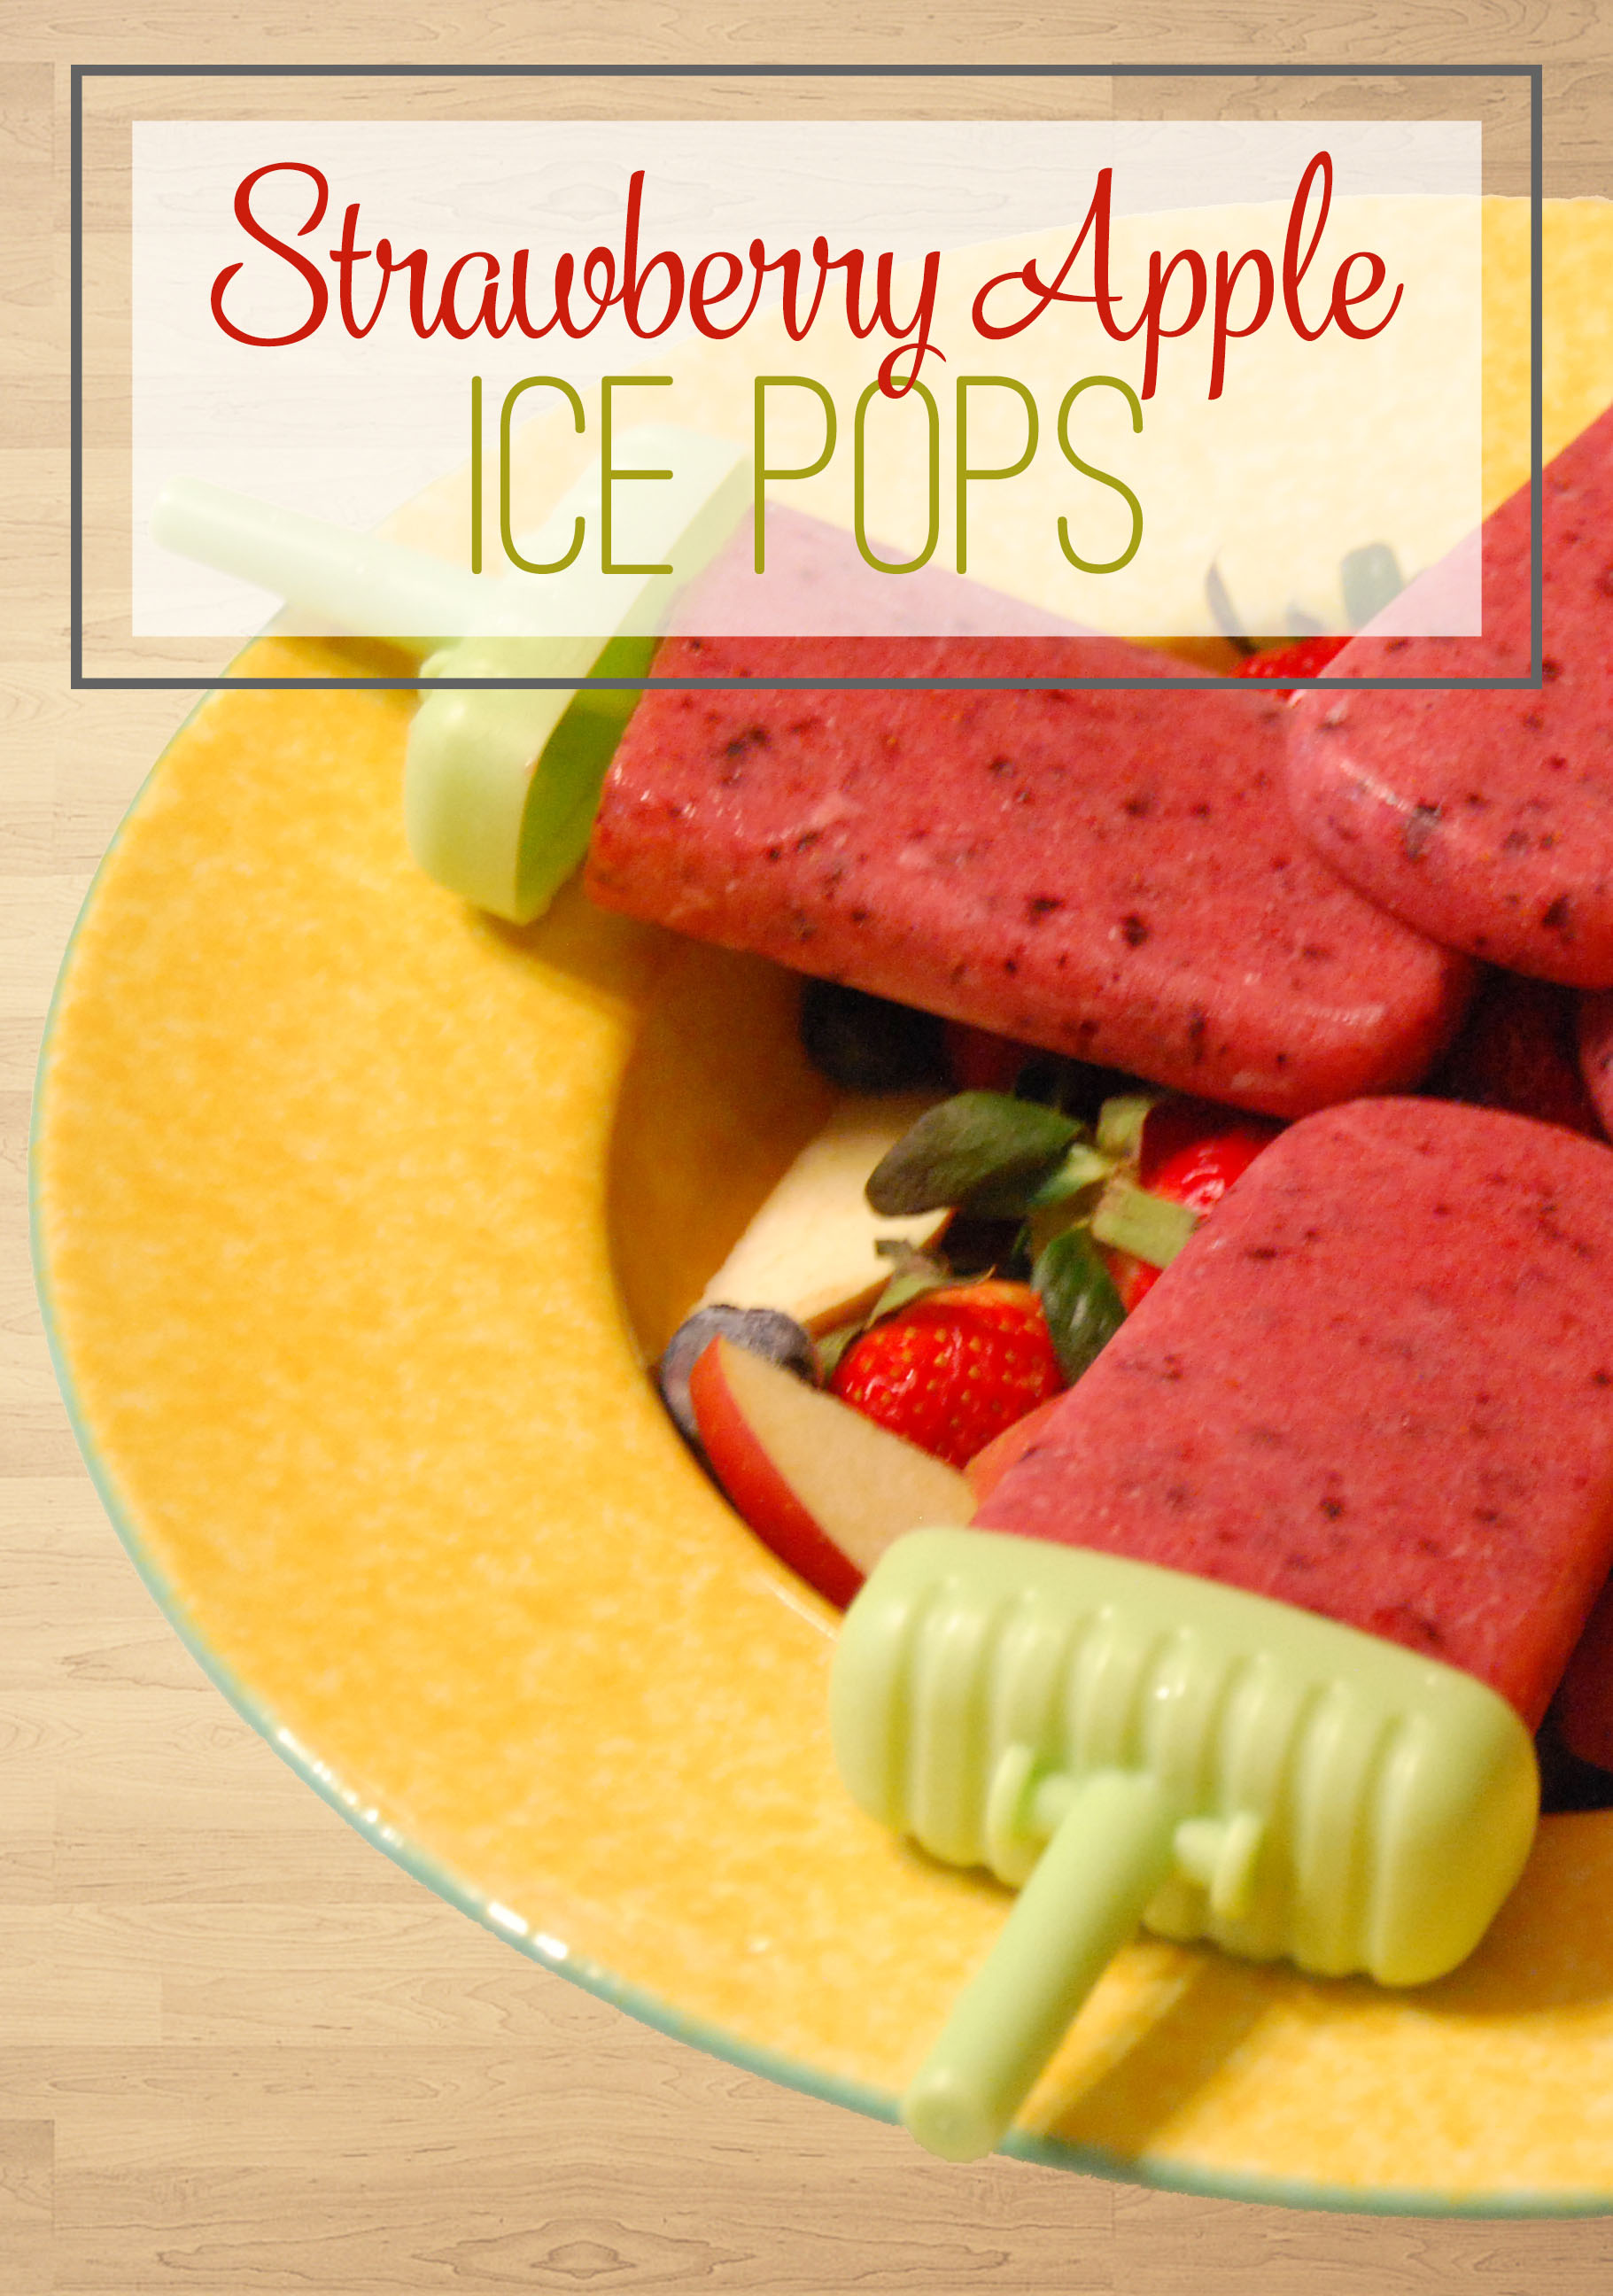 These Healthy Strawberry Apple Ice Pops are the perfect treat any time of day! This recipe is made with only fruit and no added sugar, and is a healthier alternative to Popsicles and ice cream, perfect for those of us who are trying to trim down for summer swim suits! Strawberries and apples are a yummy combination for this delicious treat, and instead of sugar, we've just added more fruit! This easy recipe will have you in and out of the kitchen in minutes, and you will love the flavor of this icy treat!